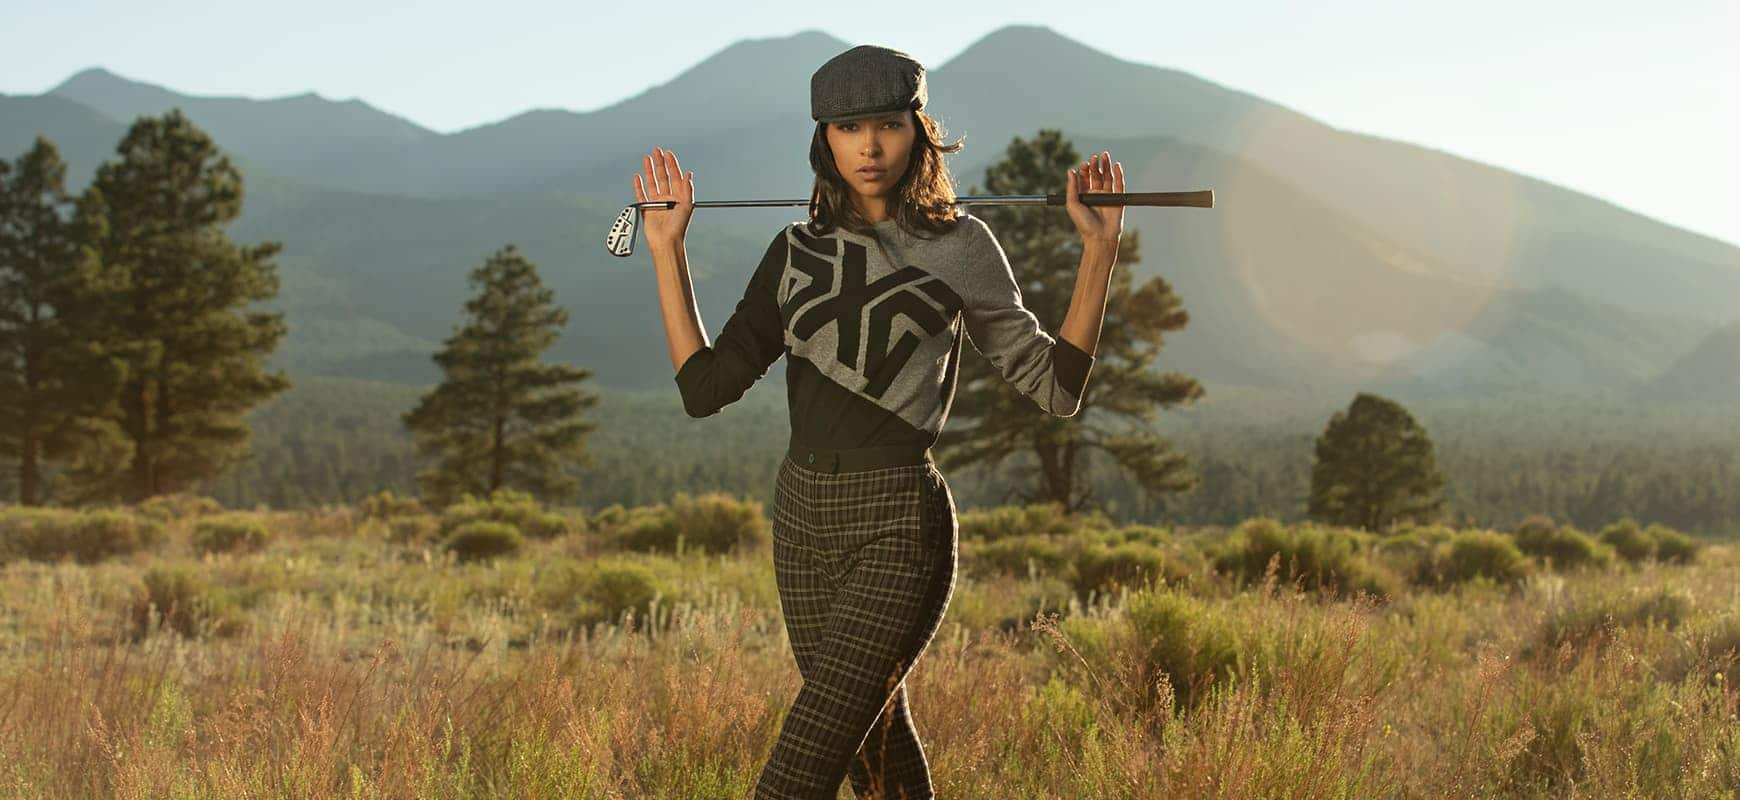 pxg golf apparel